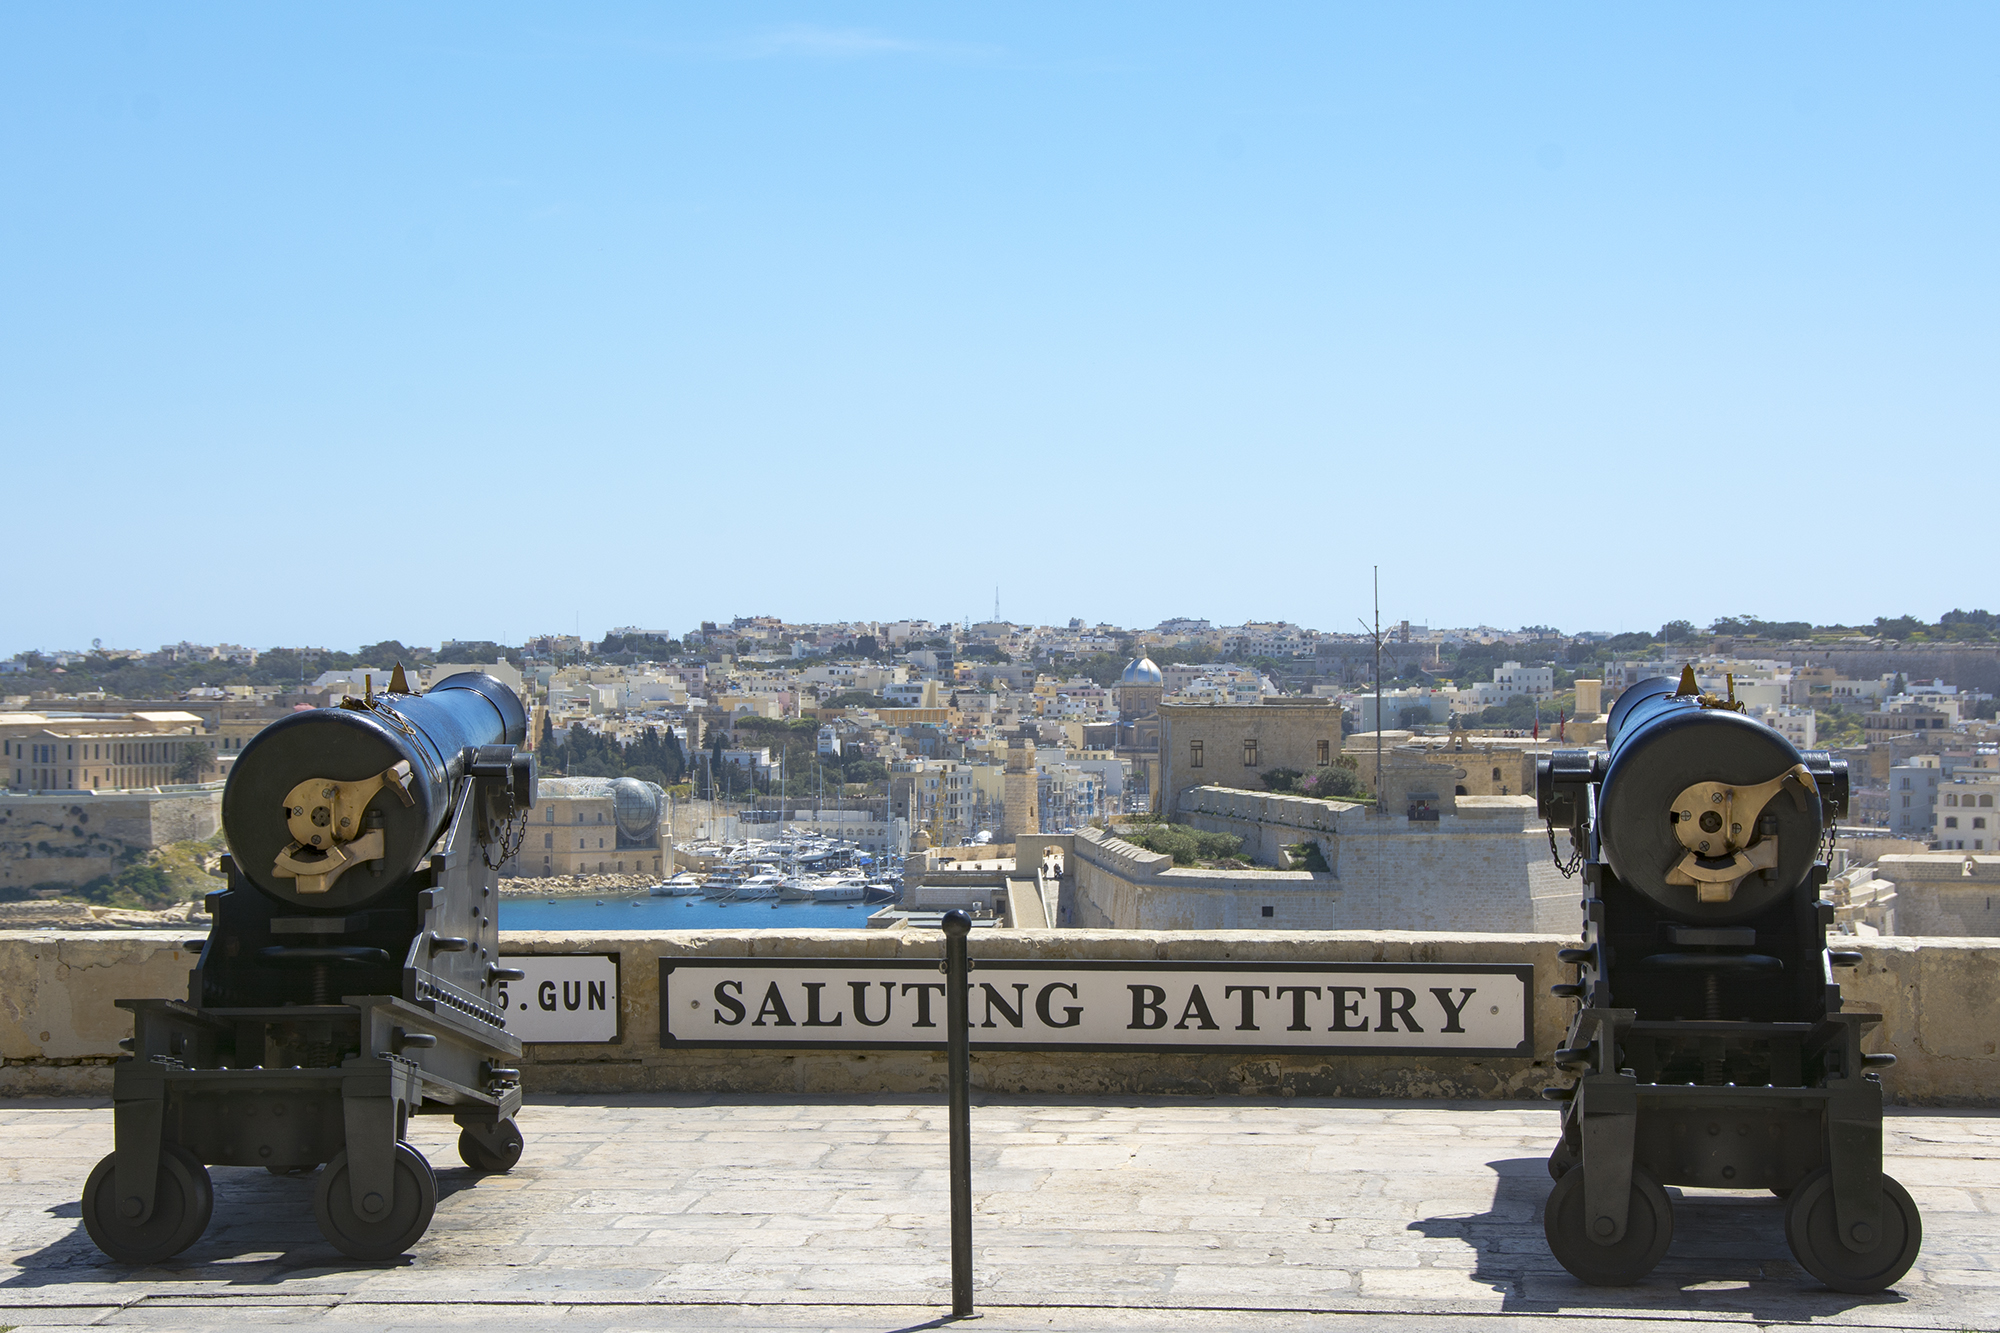 Saluting Battery upper barrakka gardens